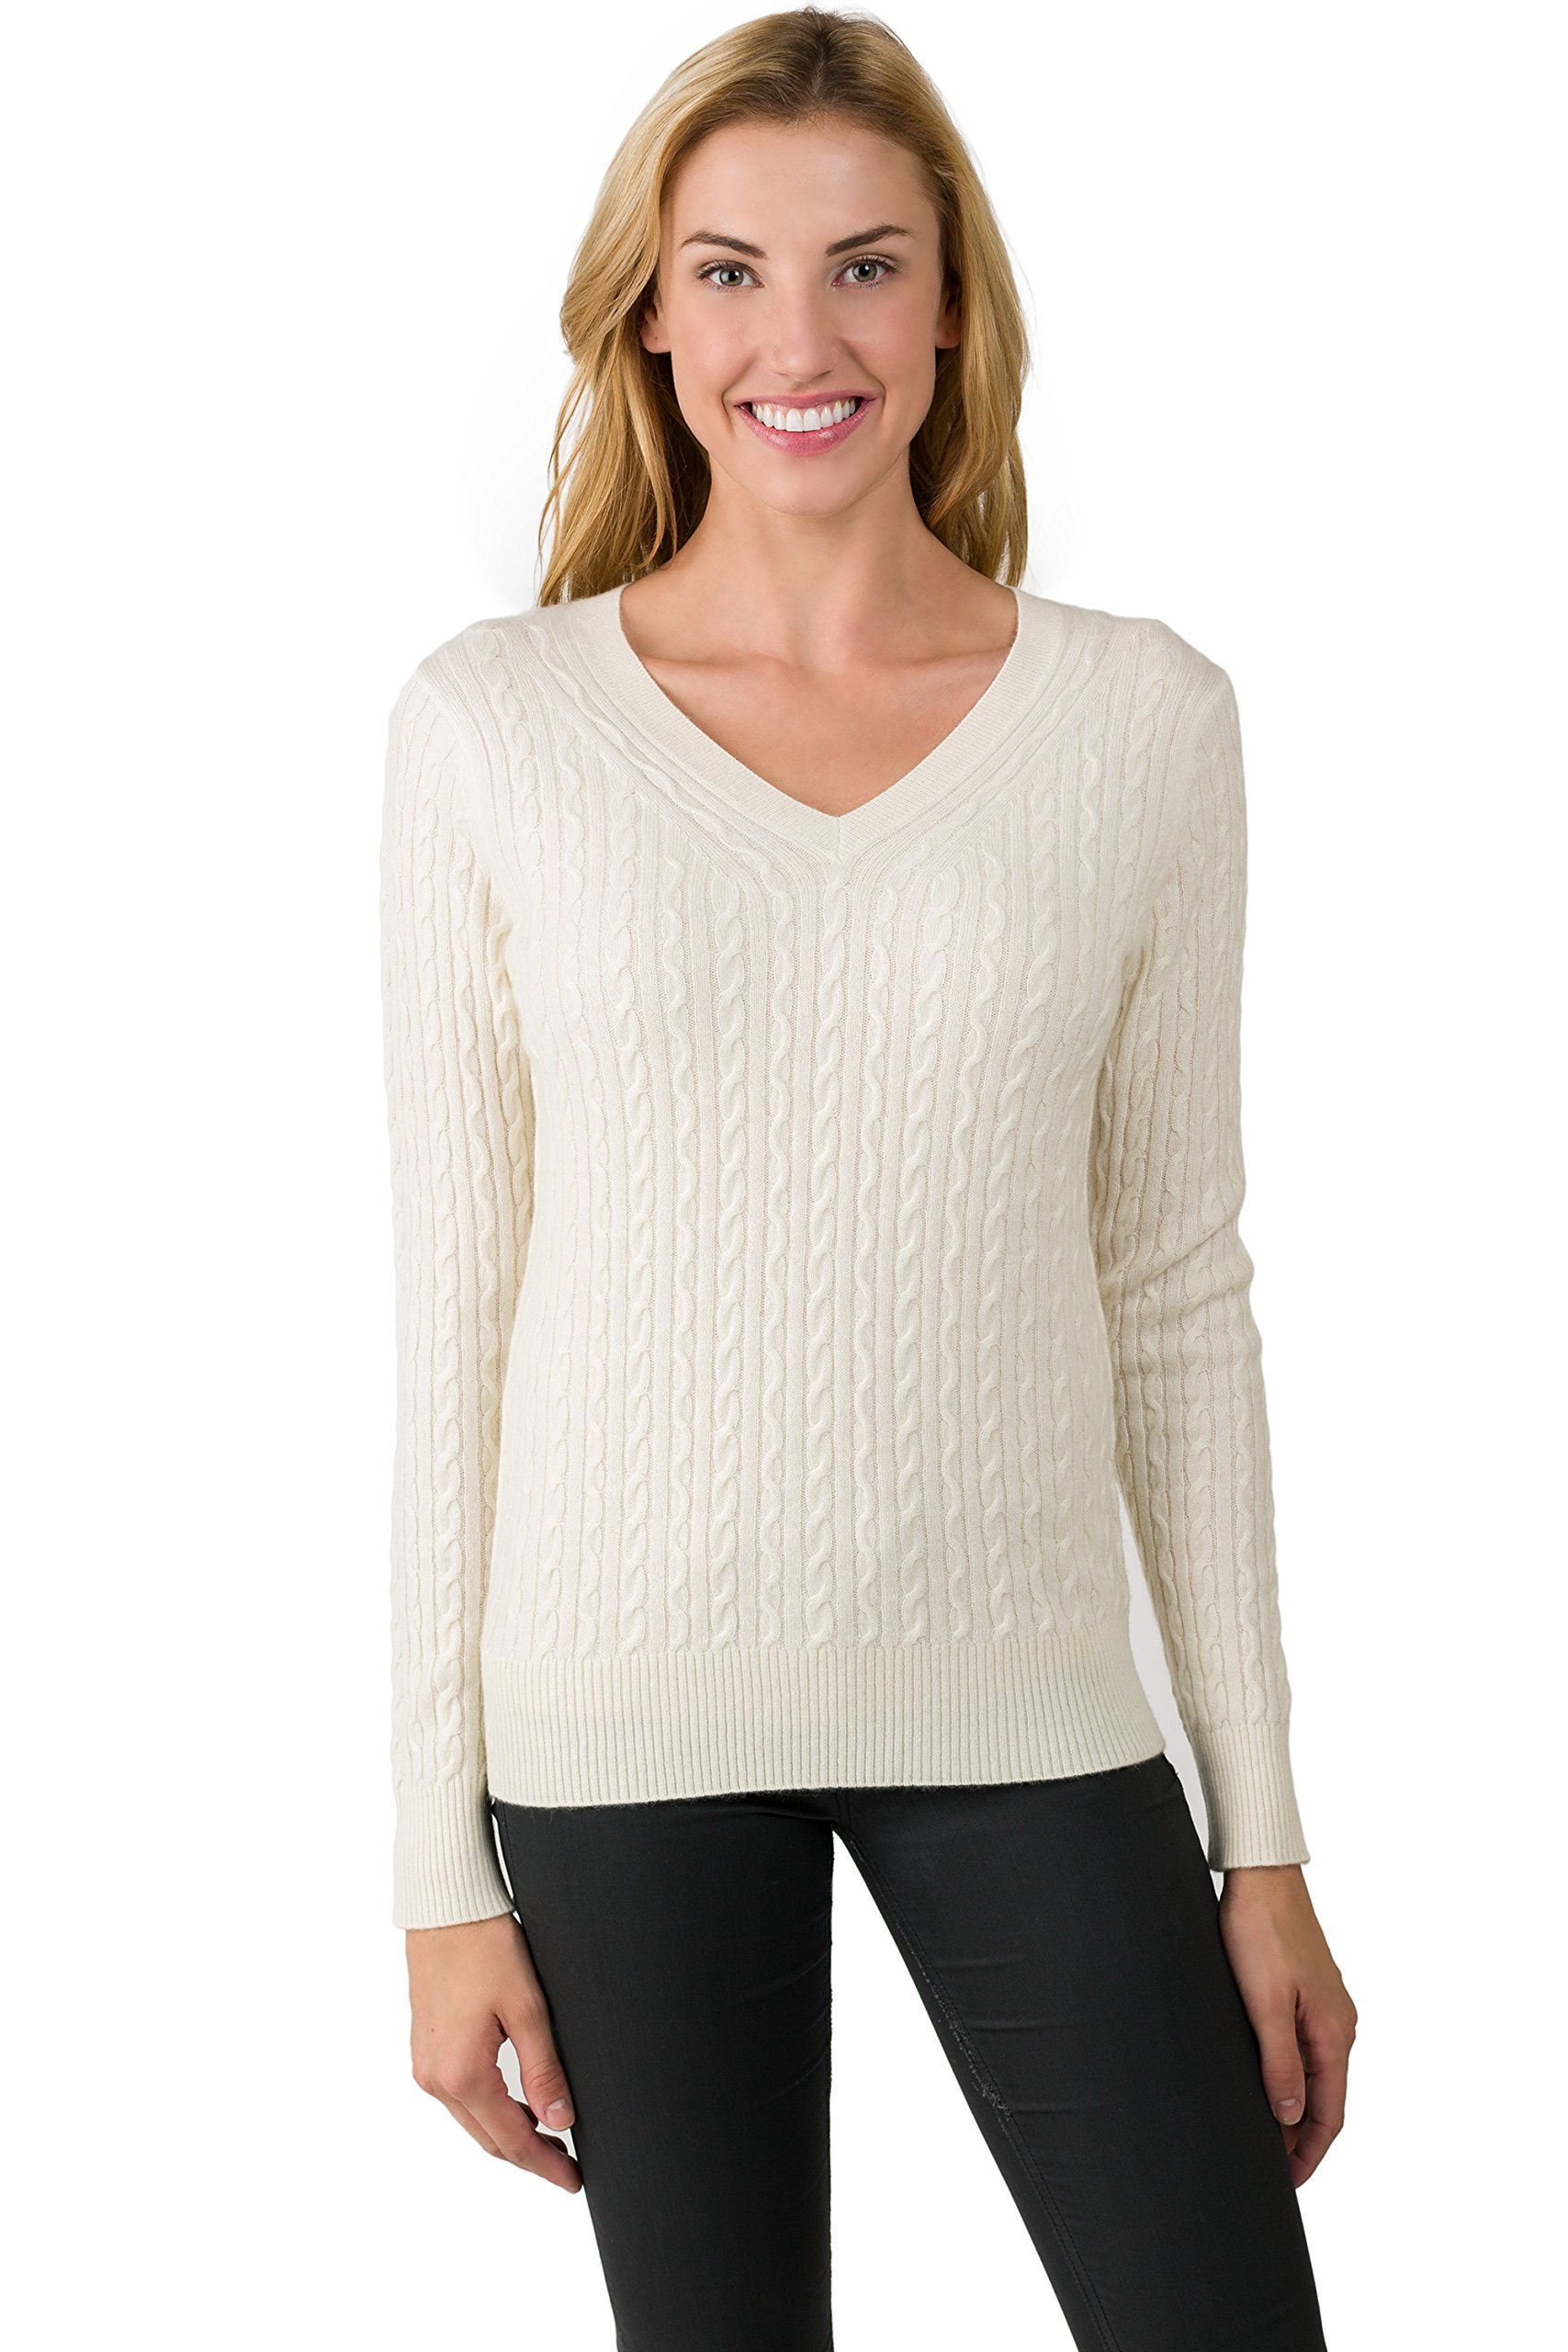 J CASHMERE Women's 100% Cashmere Long Sleeve Pullover Cable-knit V-neck Sweater Cream Small